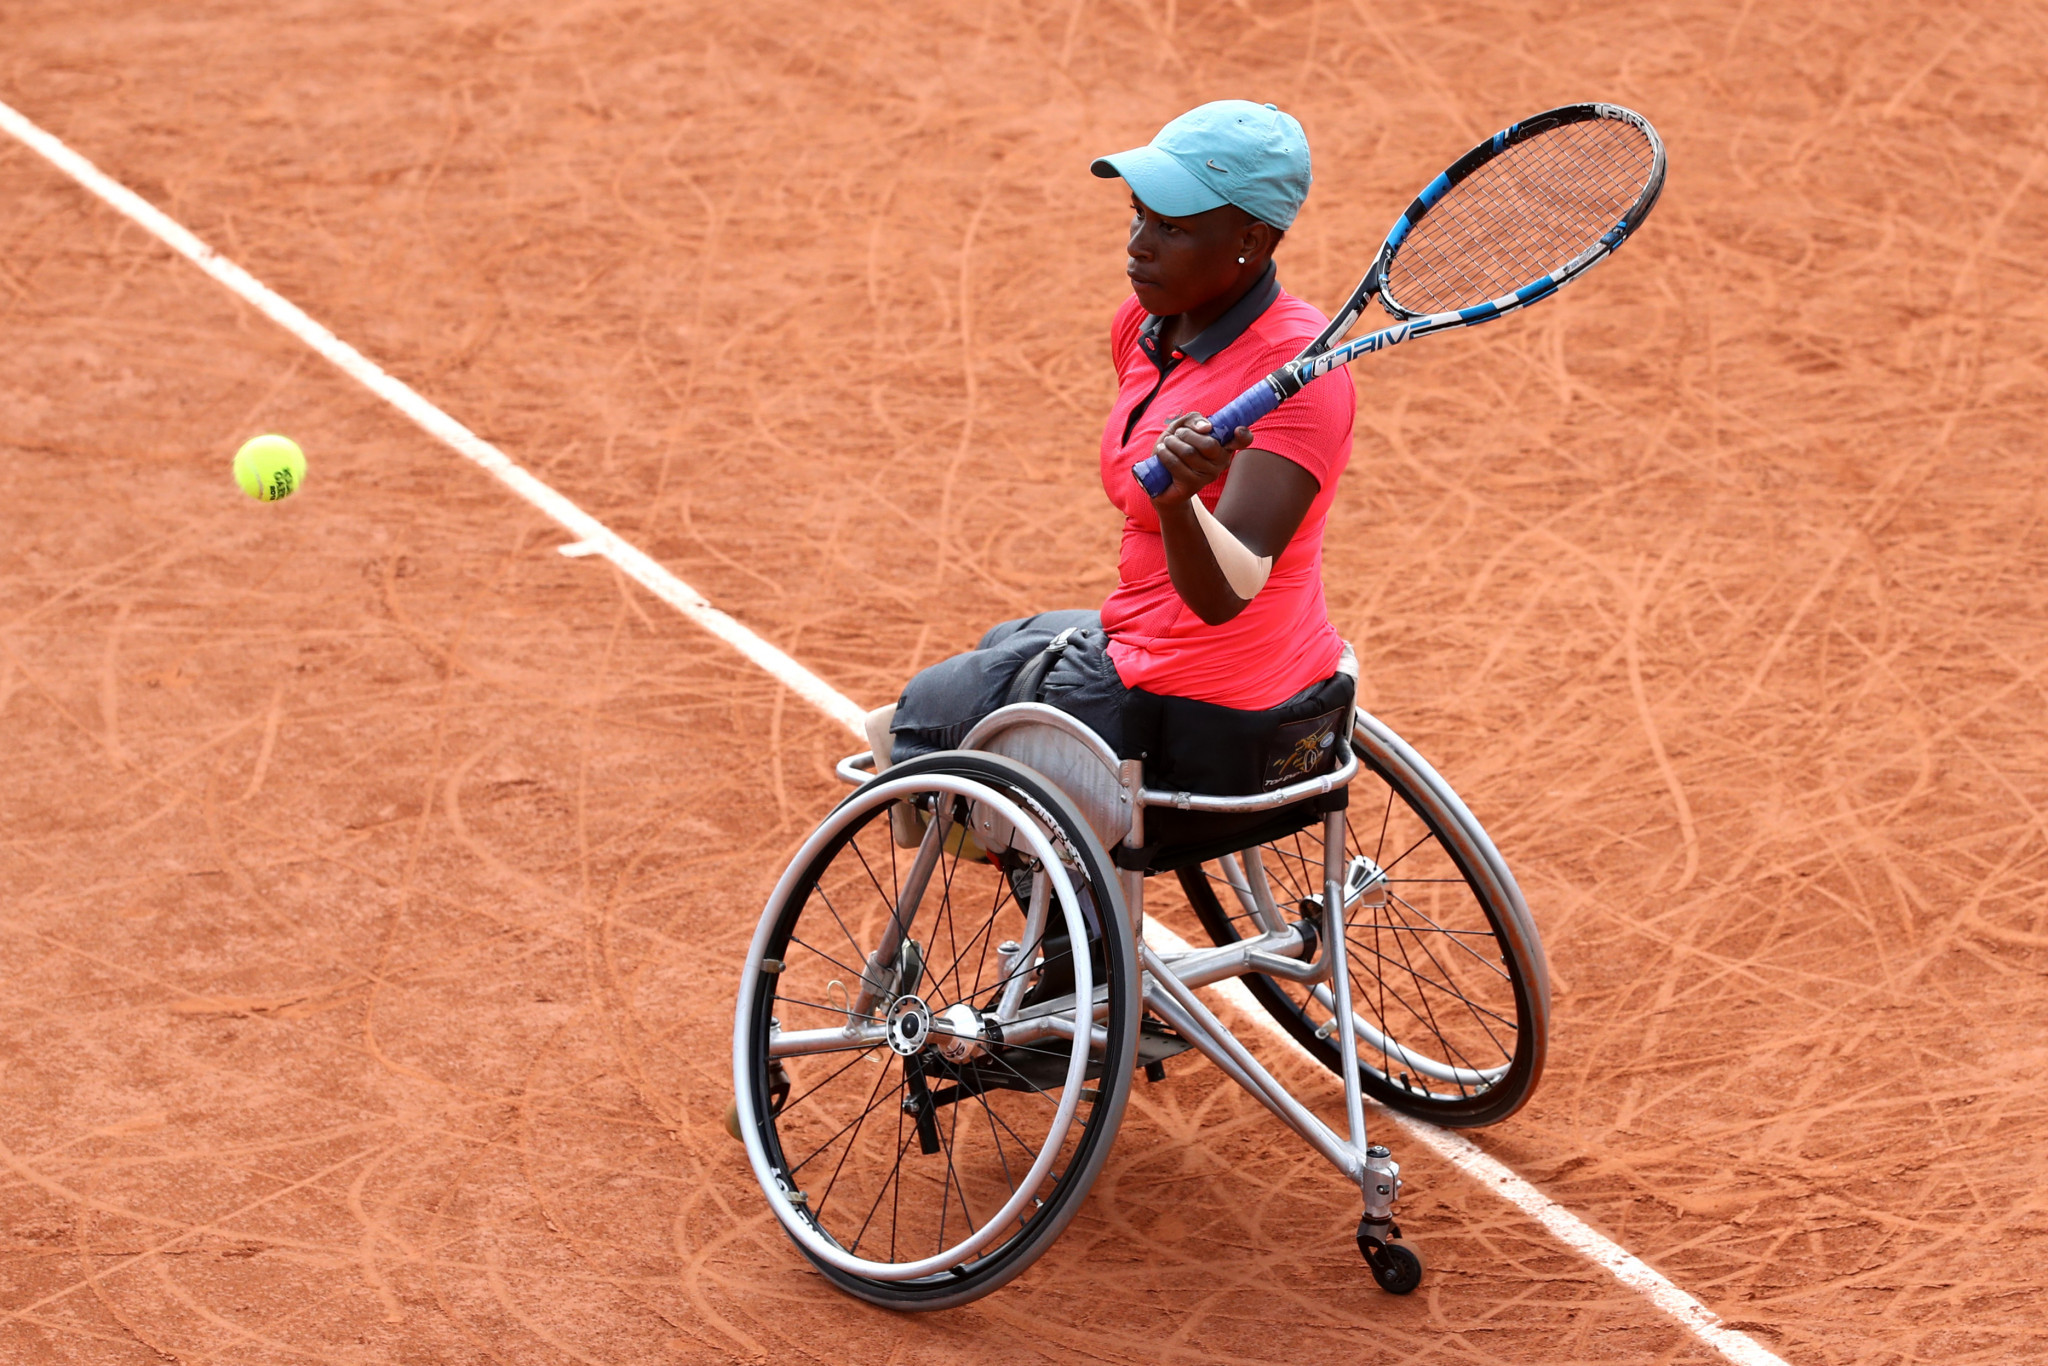 South African Kgothatso Montjane has praised the ITF's wheelchair tennis development plan ©Getty Images